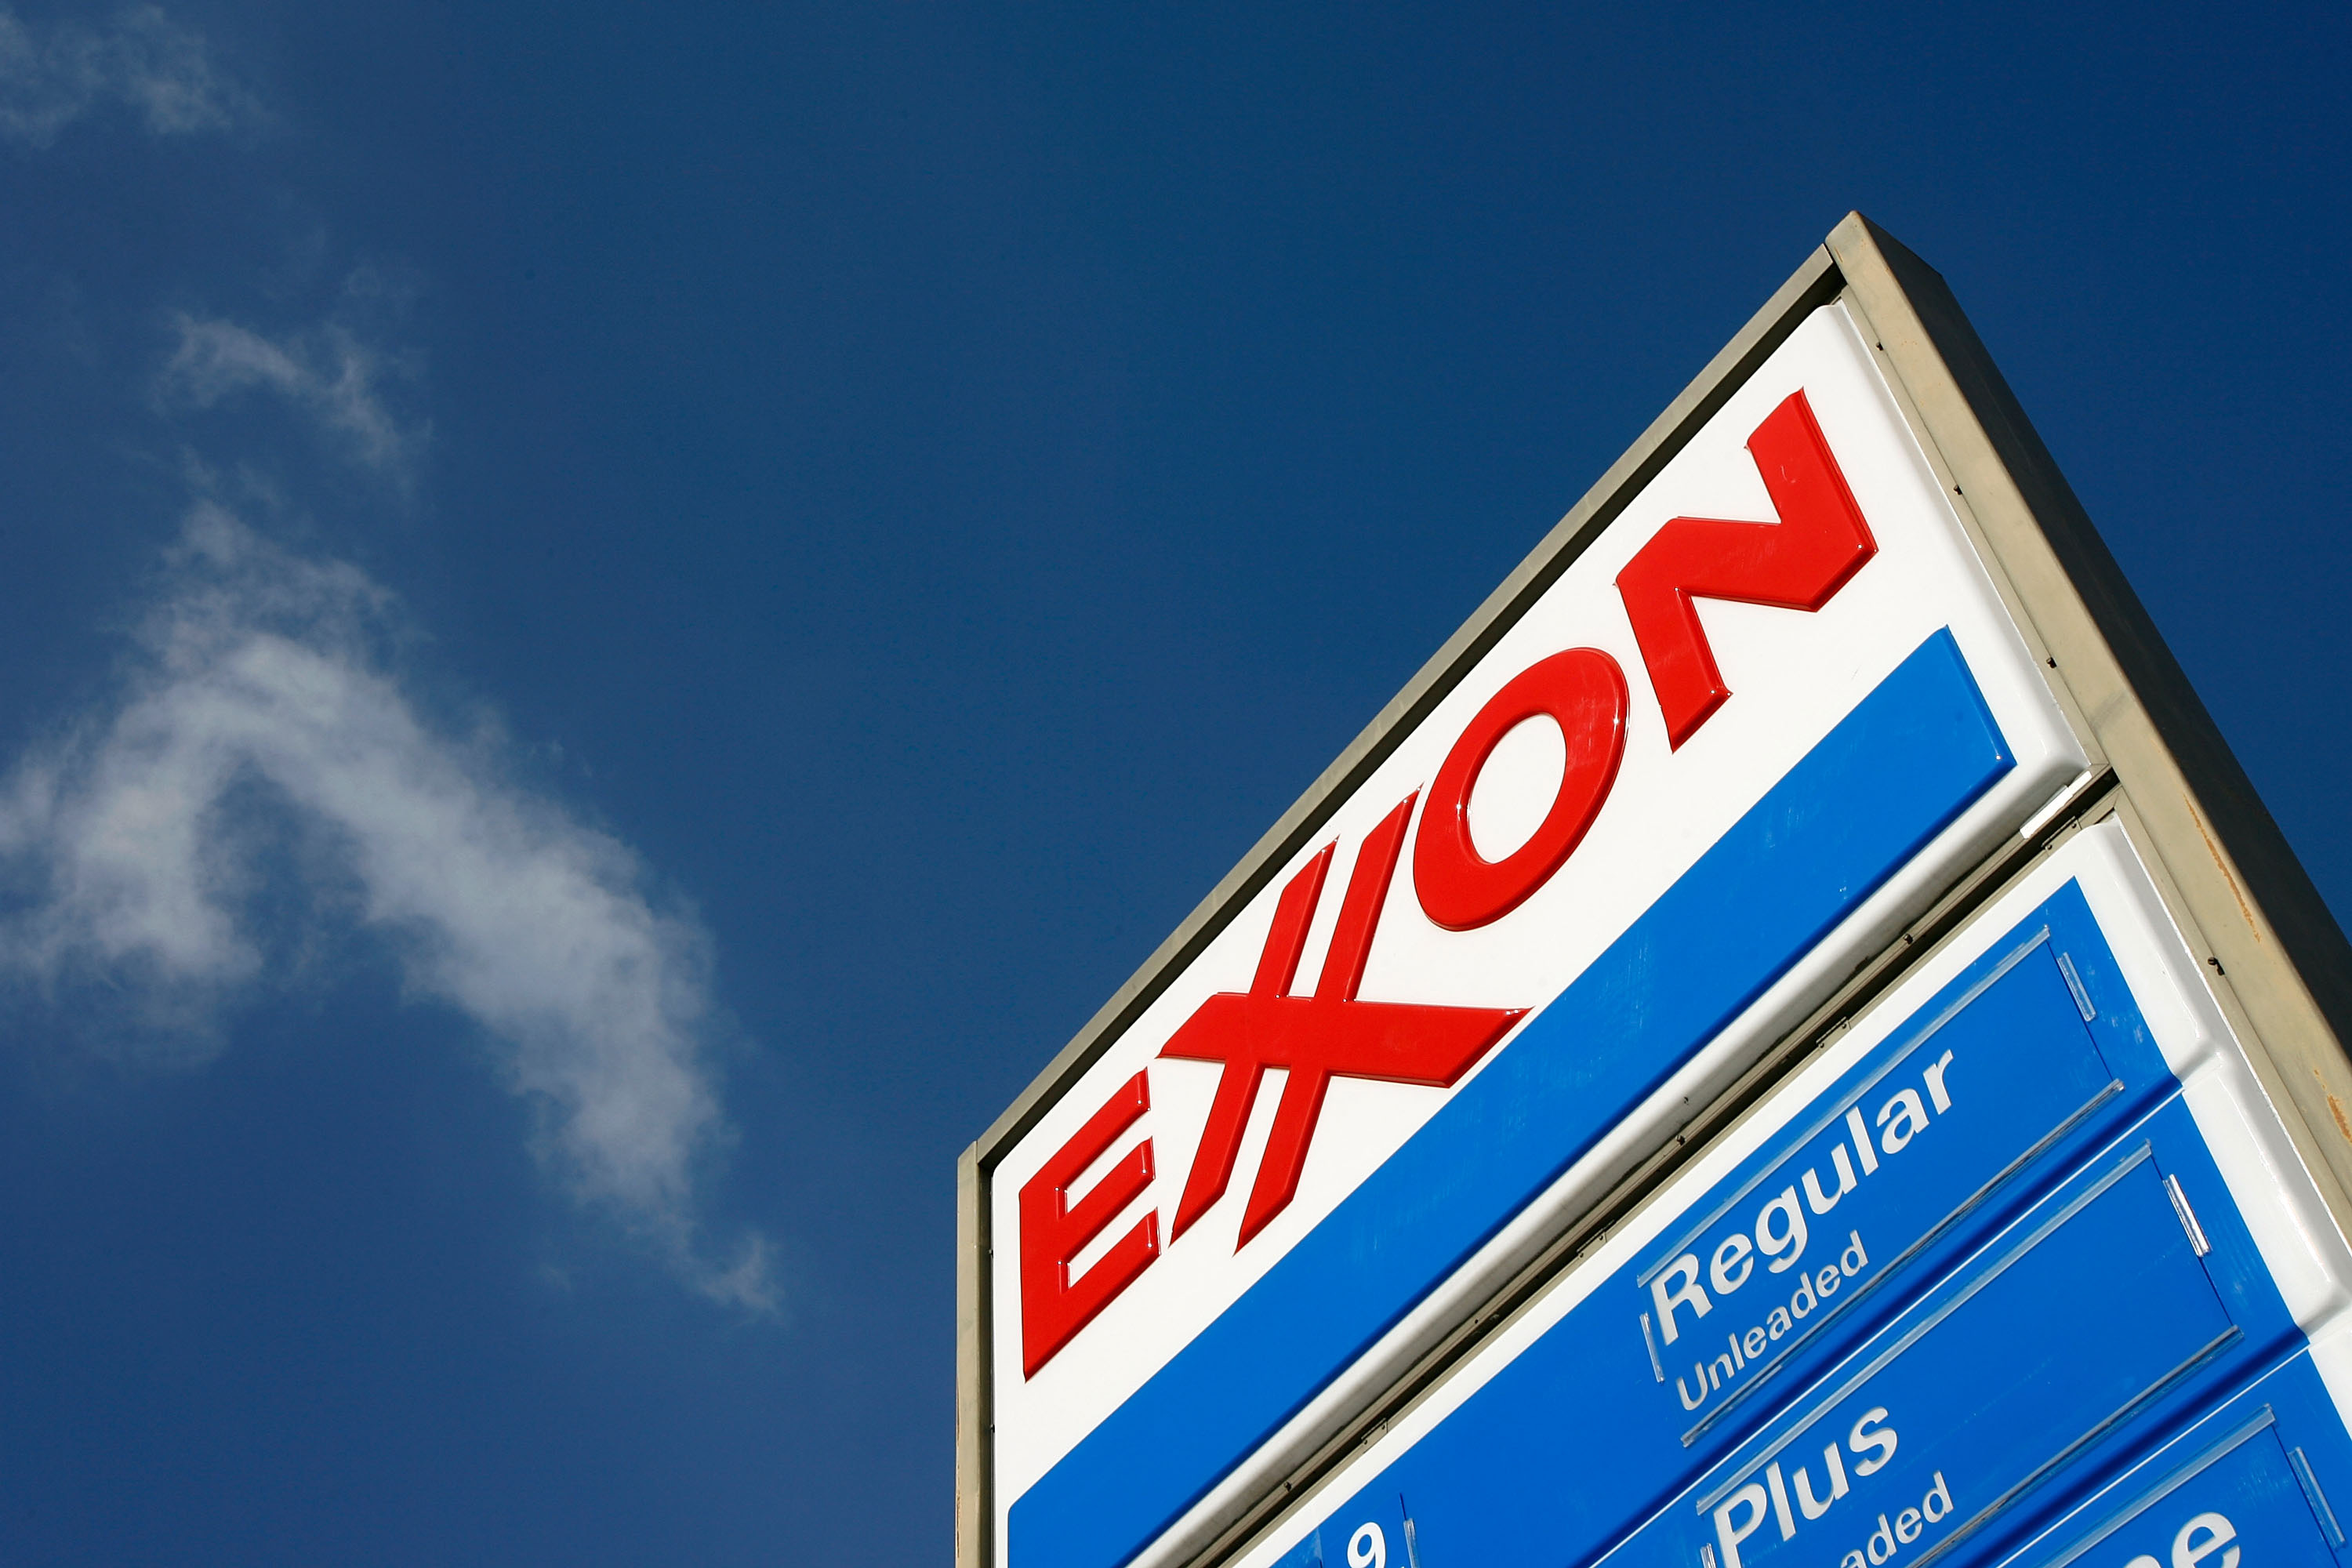 5 etfs to invest in exxon mobil corporation xom investing